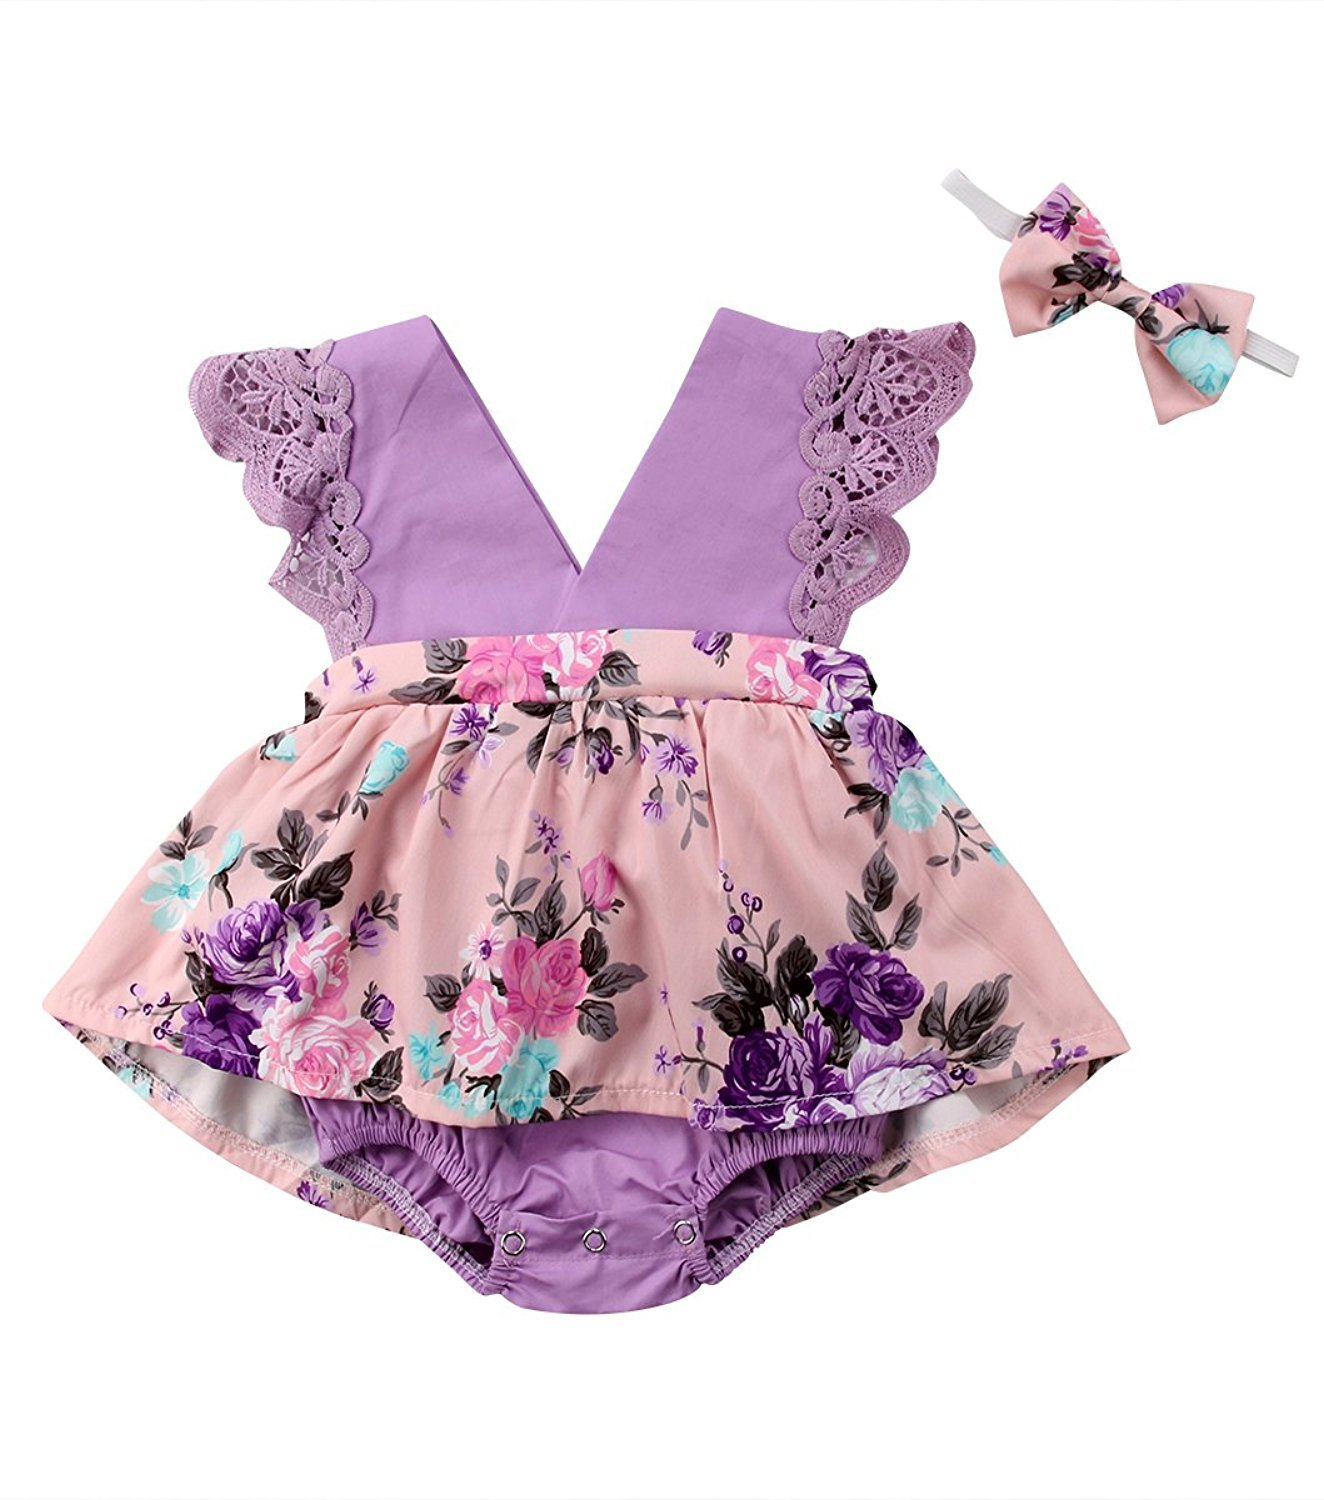 HappyMA Toddler Baby Girl Clothes Floral Dress Lace Ruffle Sleeveless Backless Skirt with Headband 2Pcs Outfit (Purple, 12-18 Months) by HappyMA (Image #1)